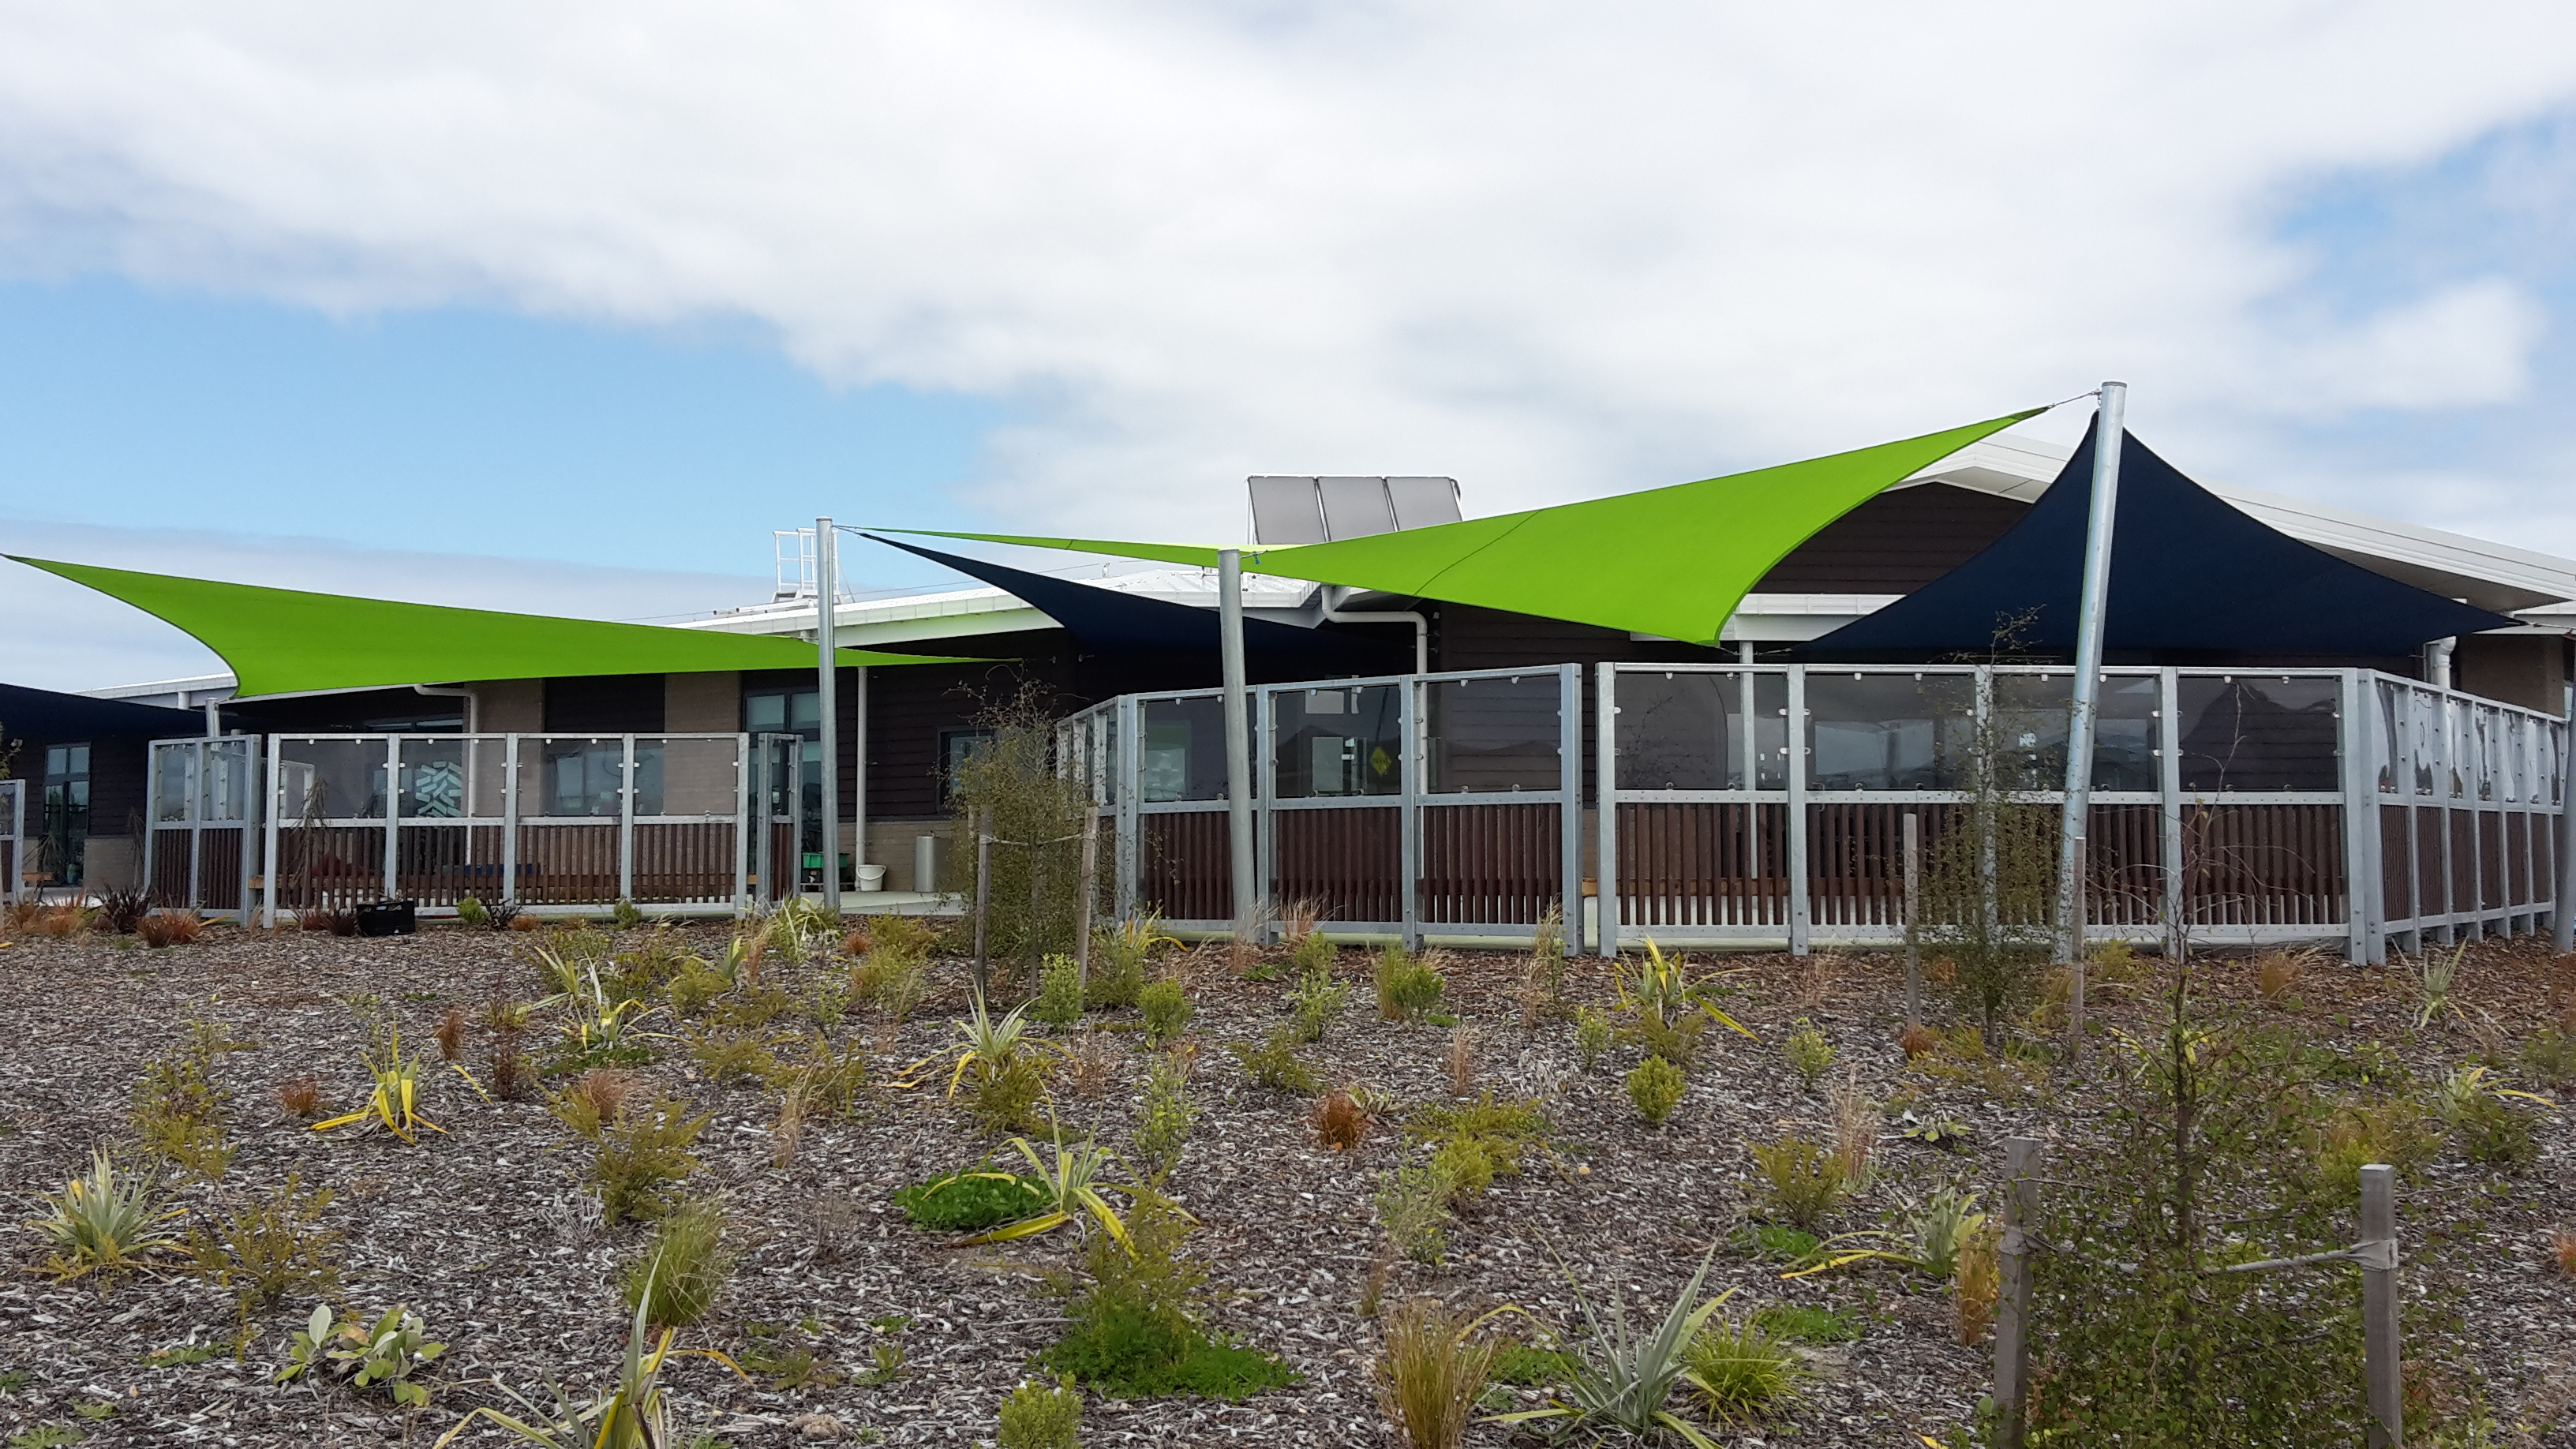 Shade Plus Ltd Shade Sails Awnings Drop Down Screens Shade Structures